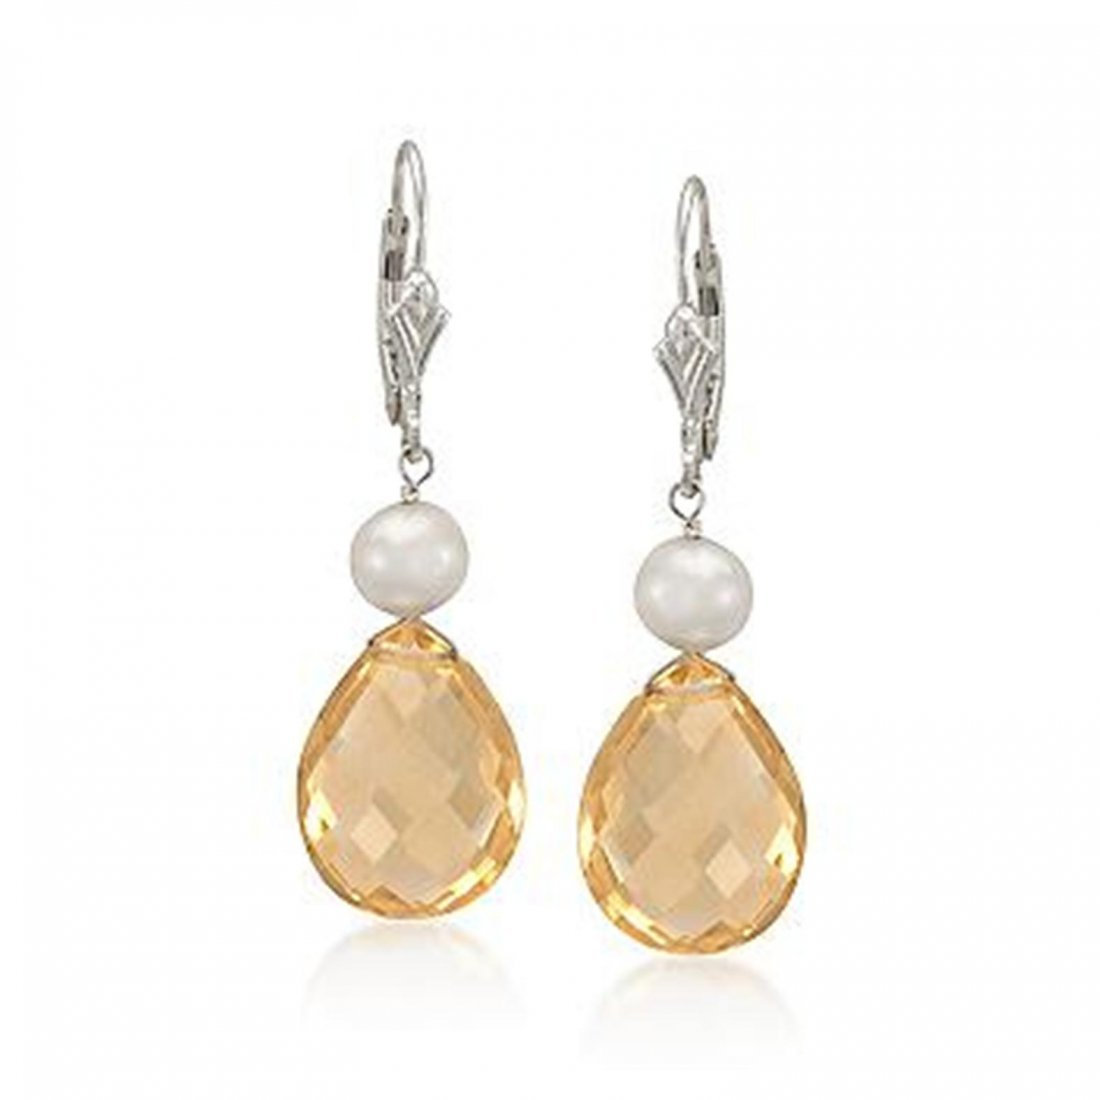 6-7mm Pearl and 17.00 ct. t.w. Citrine Drop Earrings in